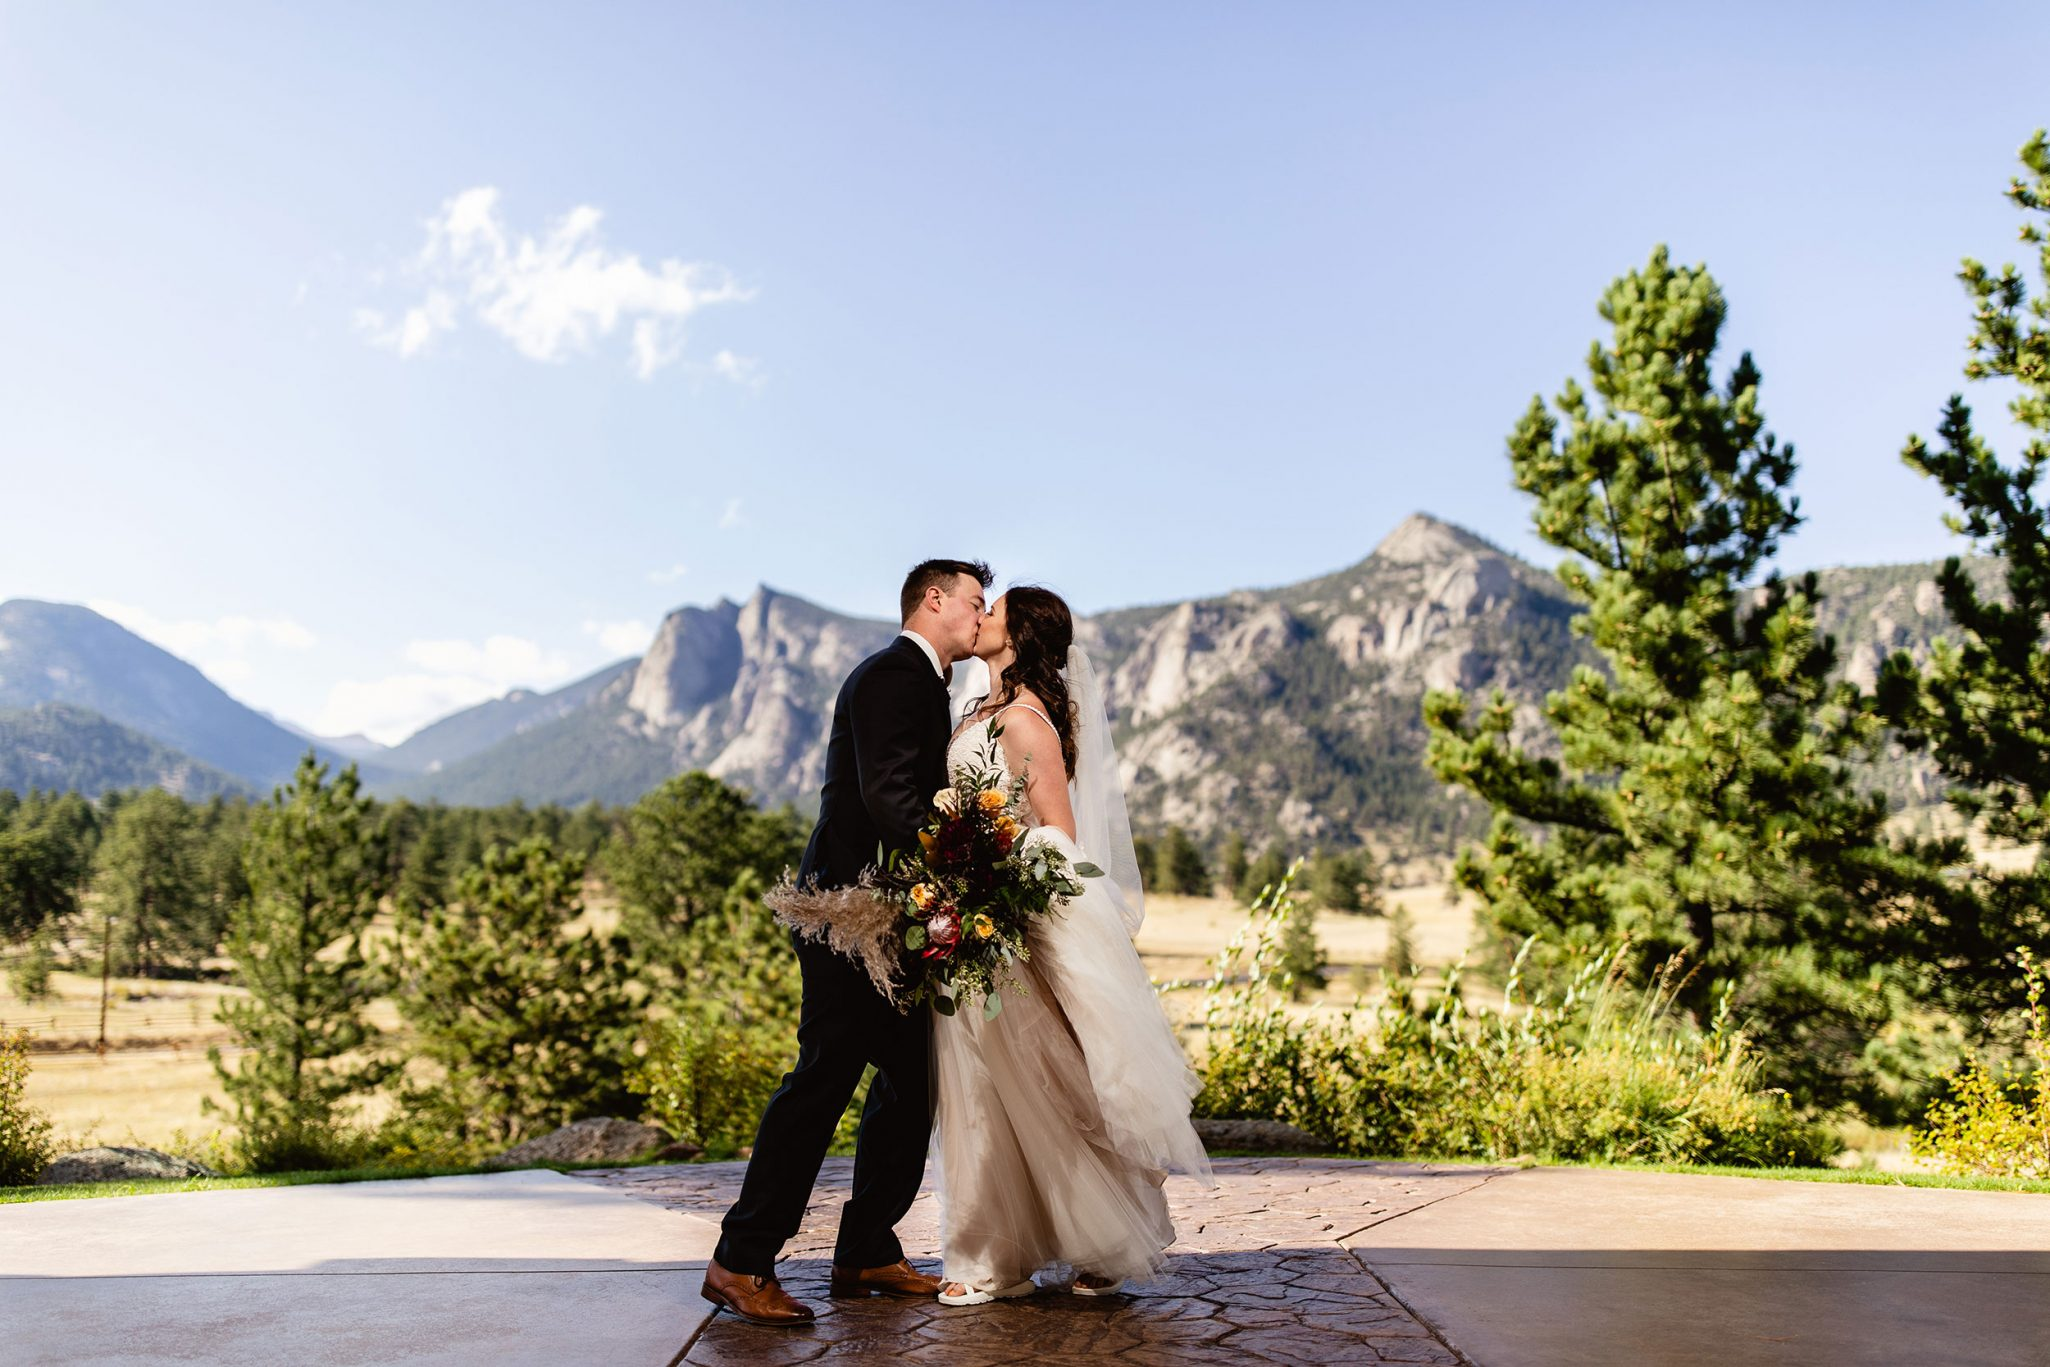 Wedding Kiss in the Mountains